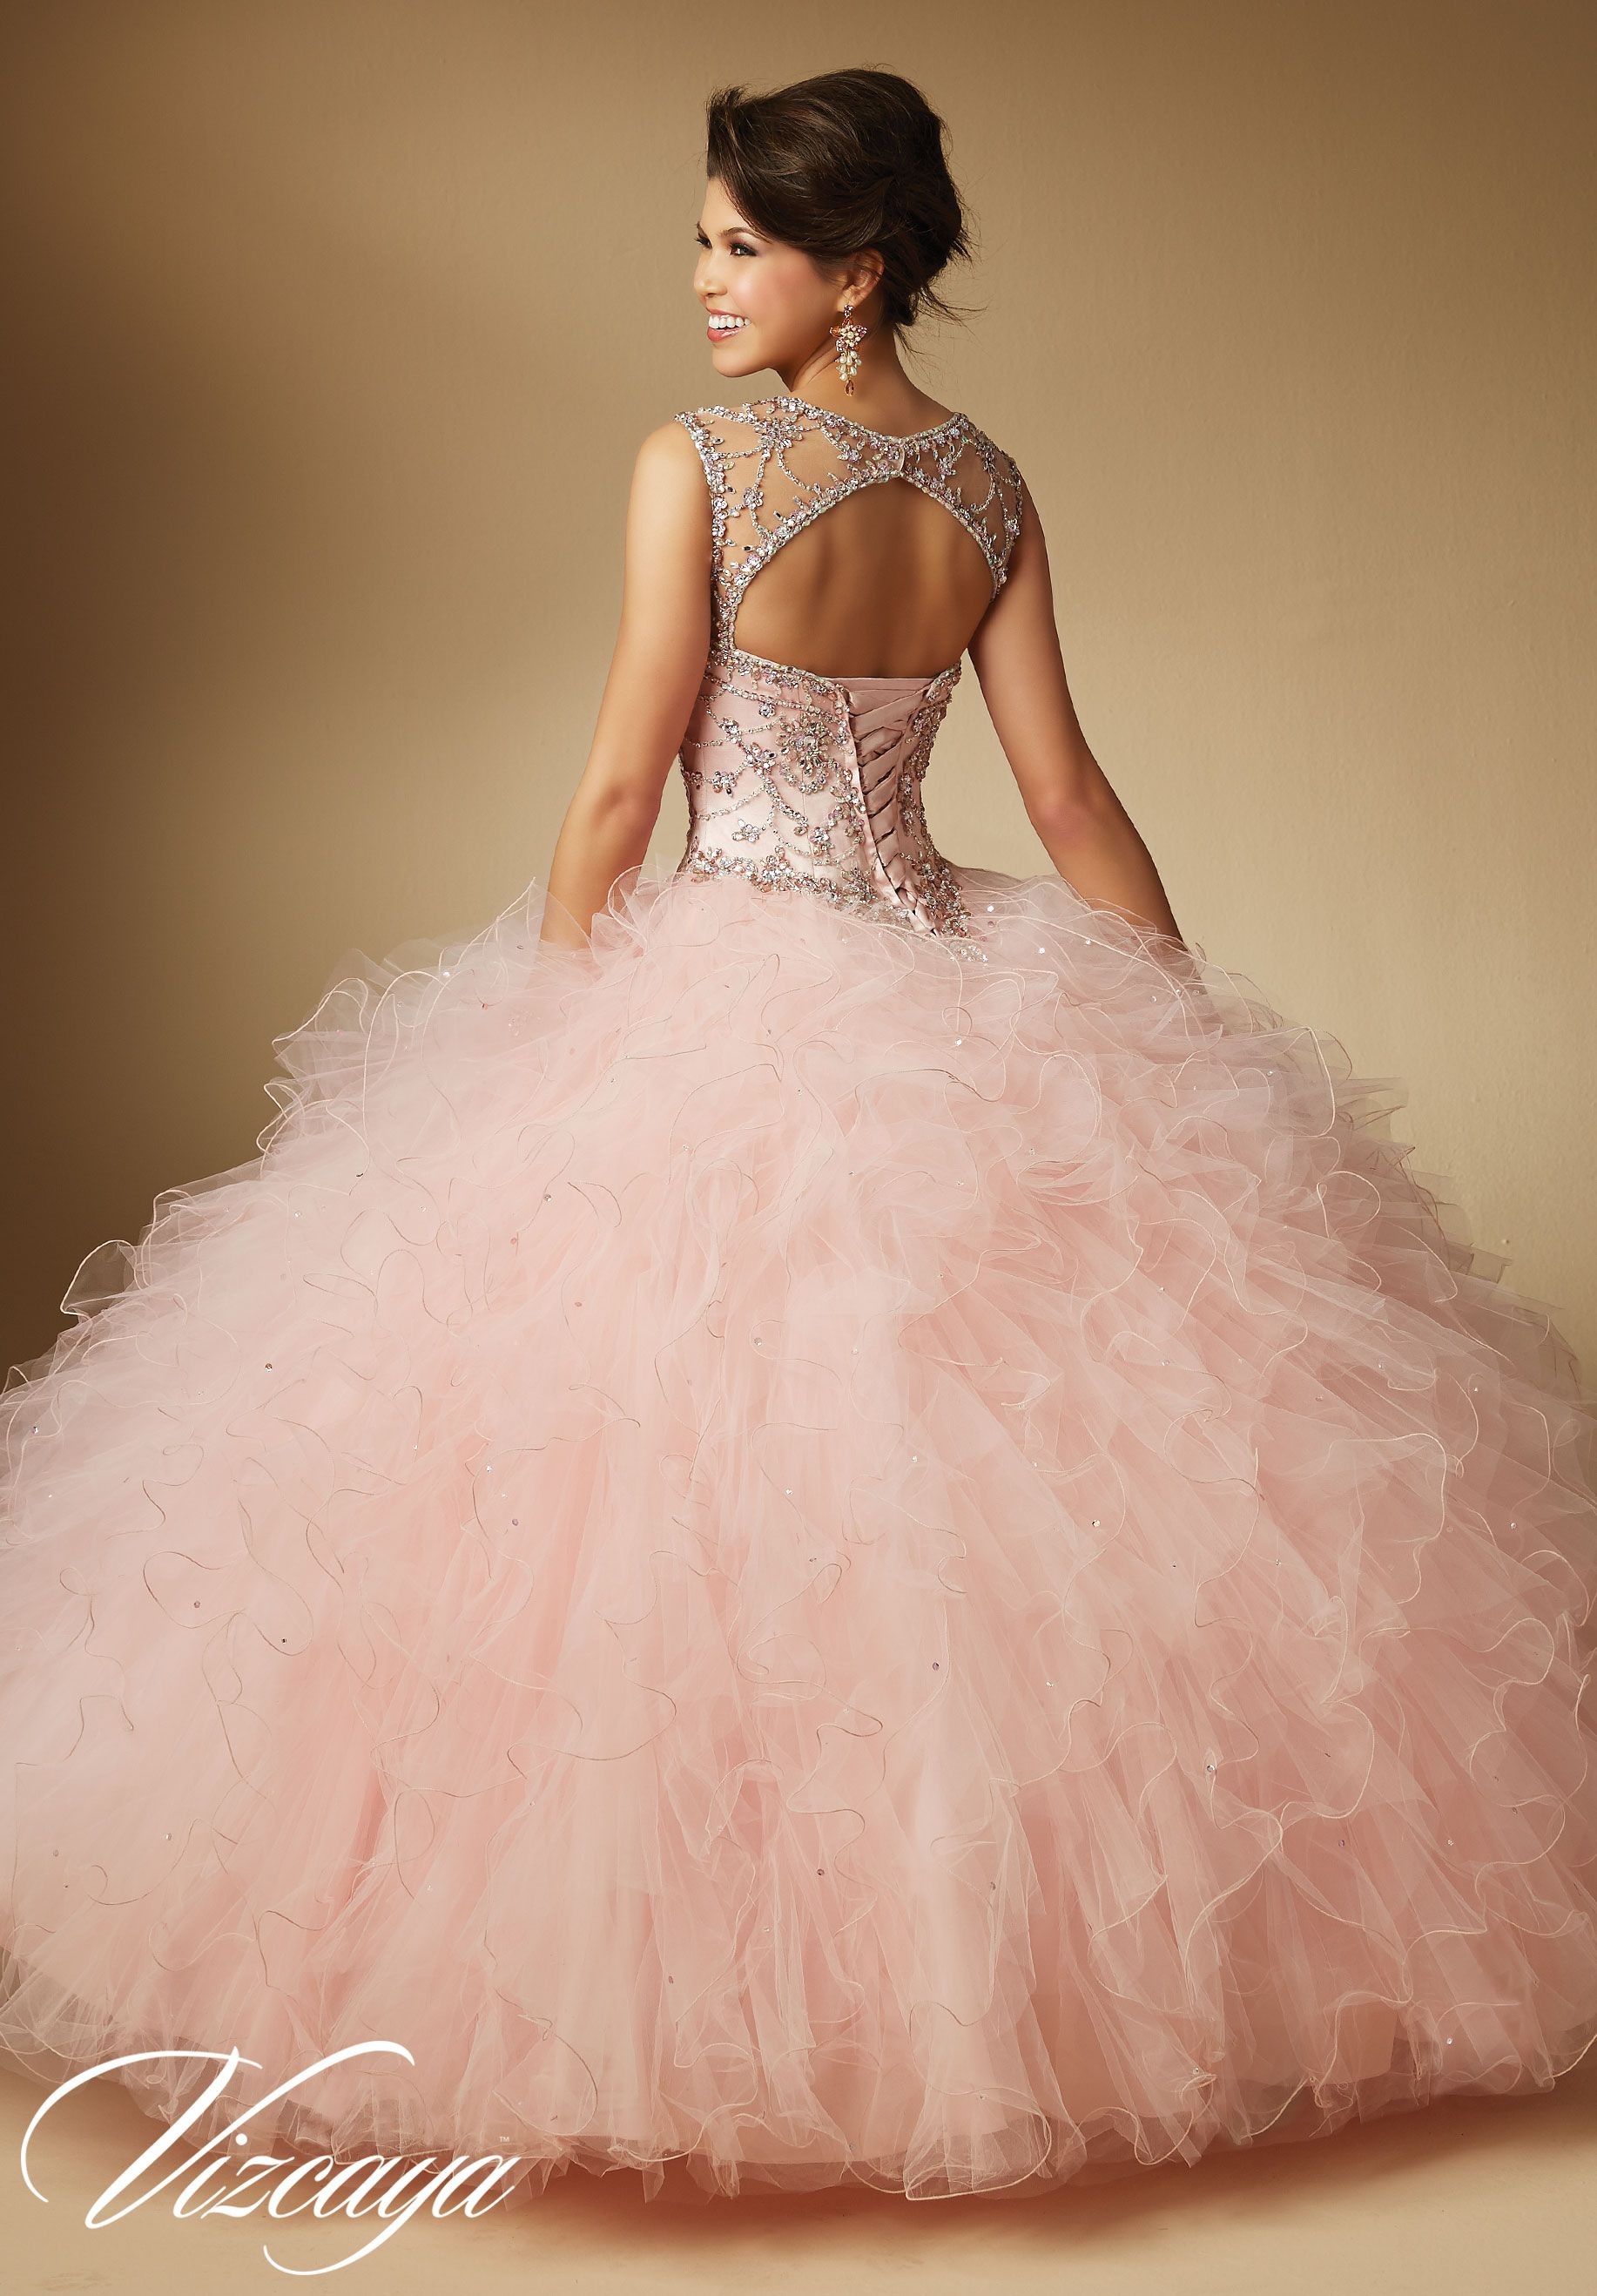 89041 Quinceanera Gowns Jeweled Beading on Ruffled Tulle | my sweet ...